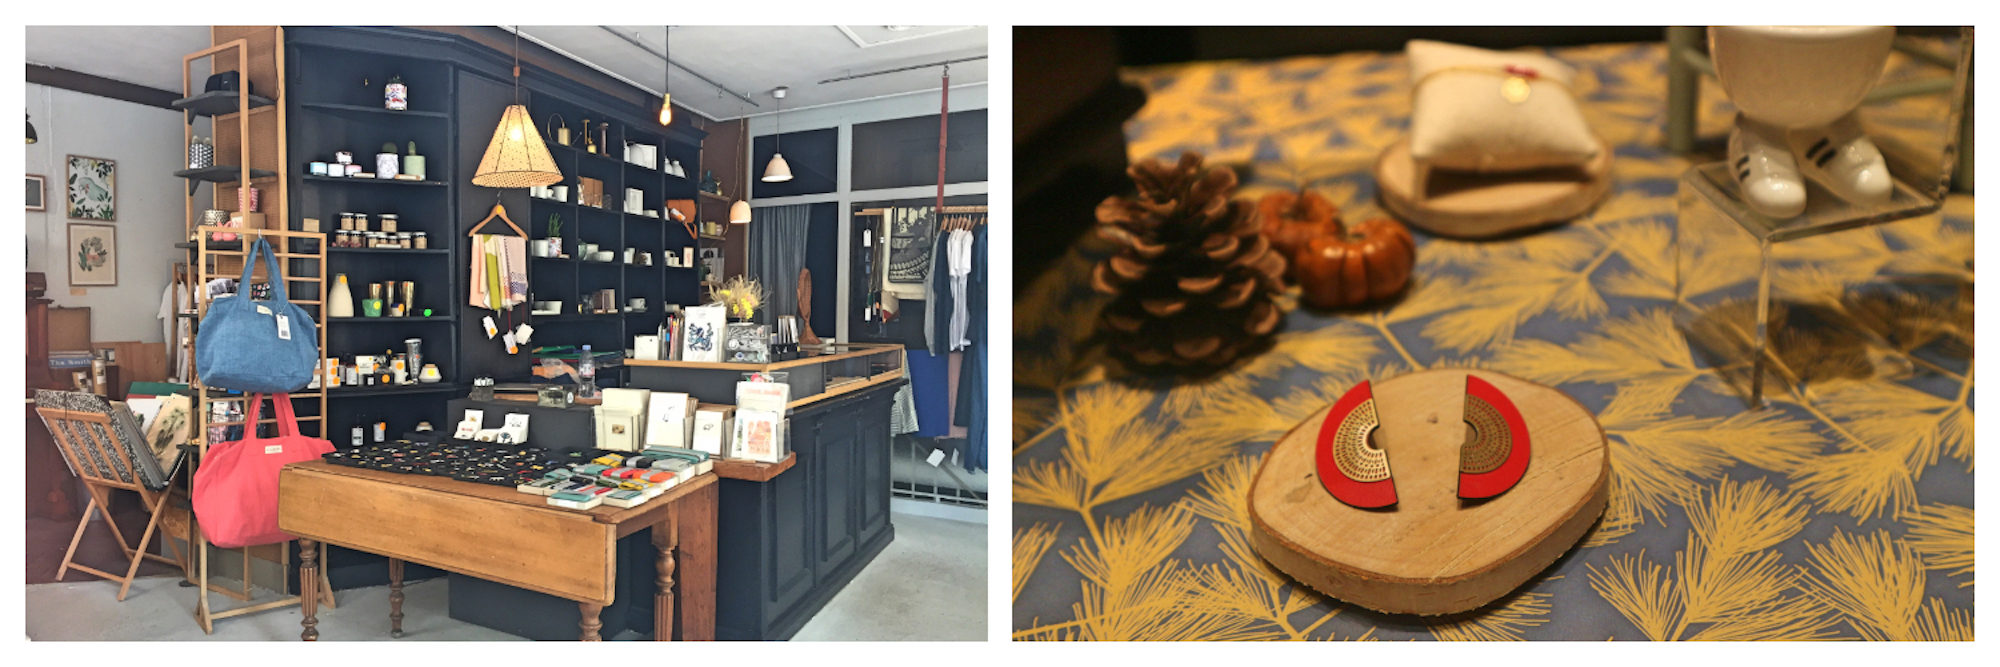 Places to go shopping in Paris in the Batignolles area include French Touche for its apparel and stationery (left) and L'Atelier Haut Perché for its handmade accessories (right).